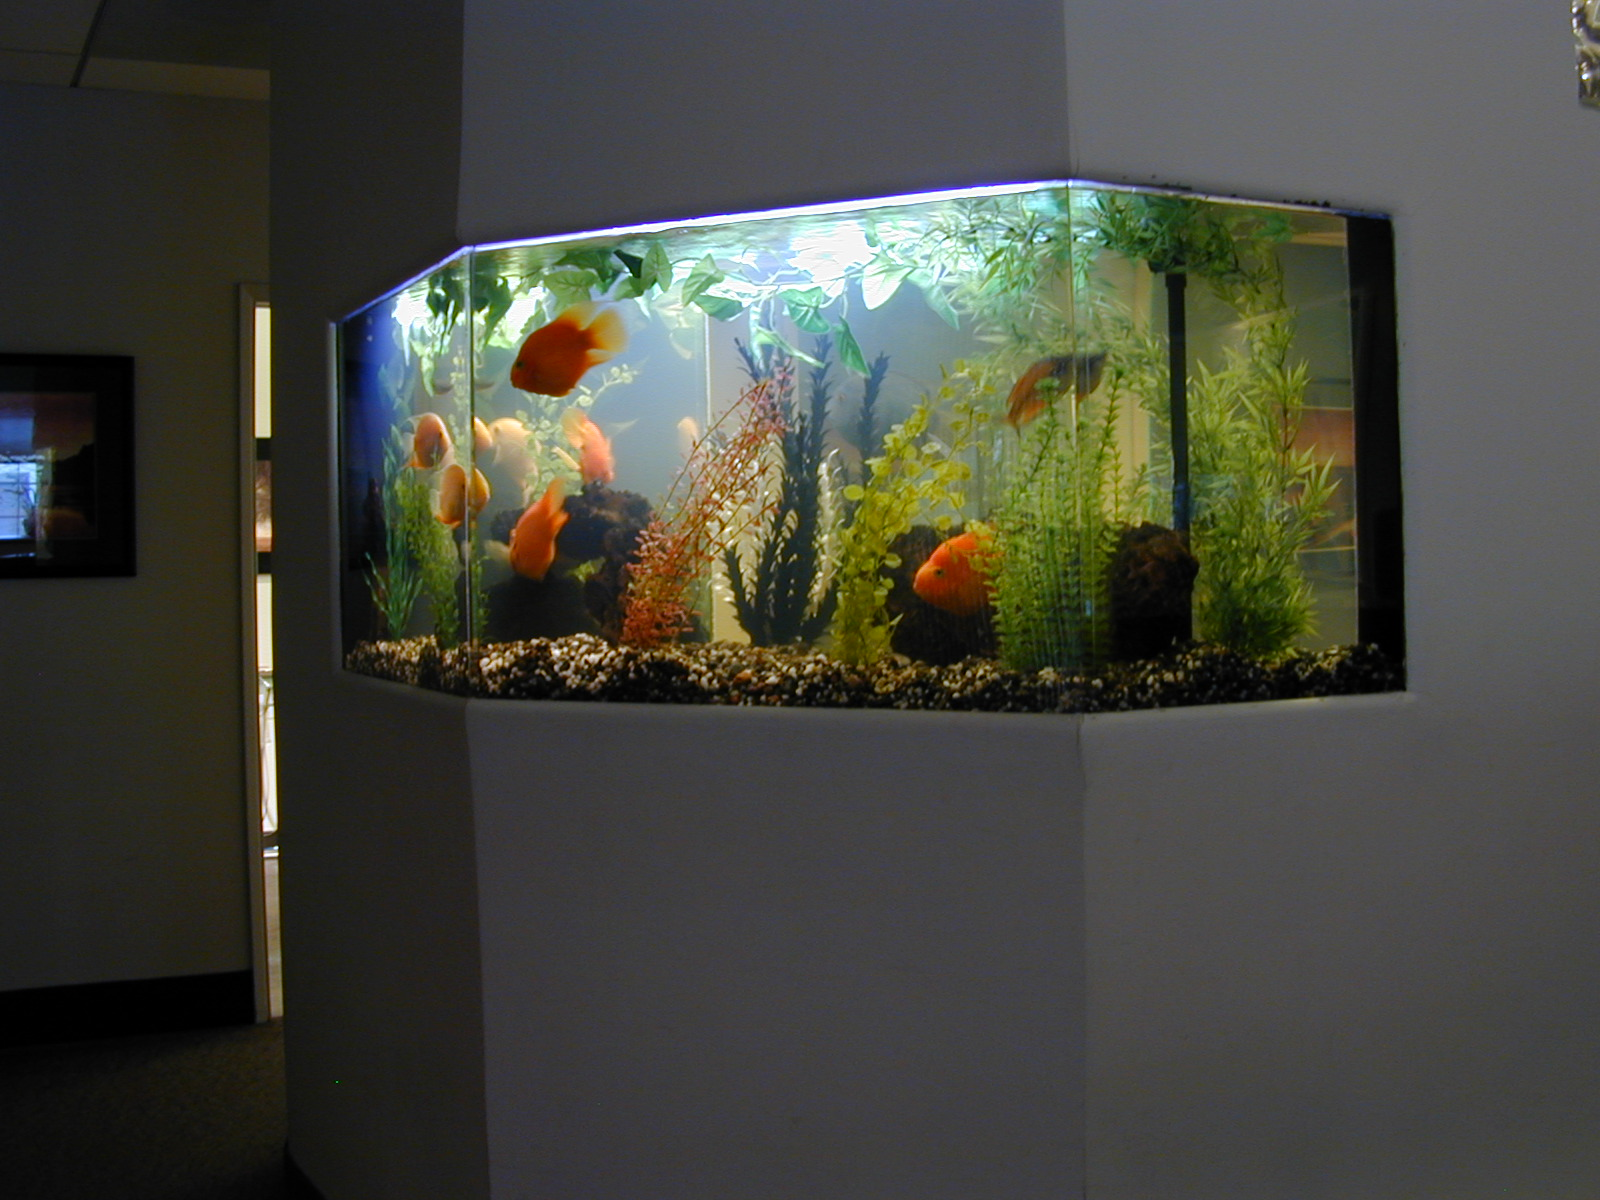 Aquarium Filters are used to process waste and impurities to maintain pristine water quality and keep your tank inhabitants healthy. There are numerous types of fish